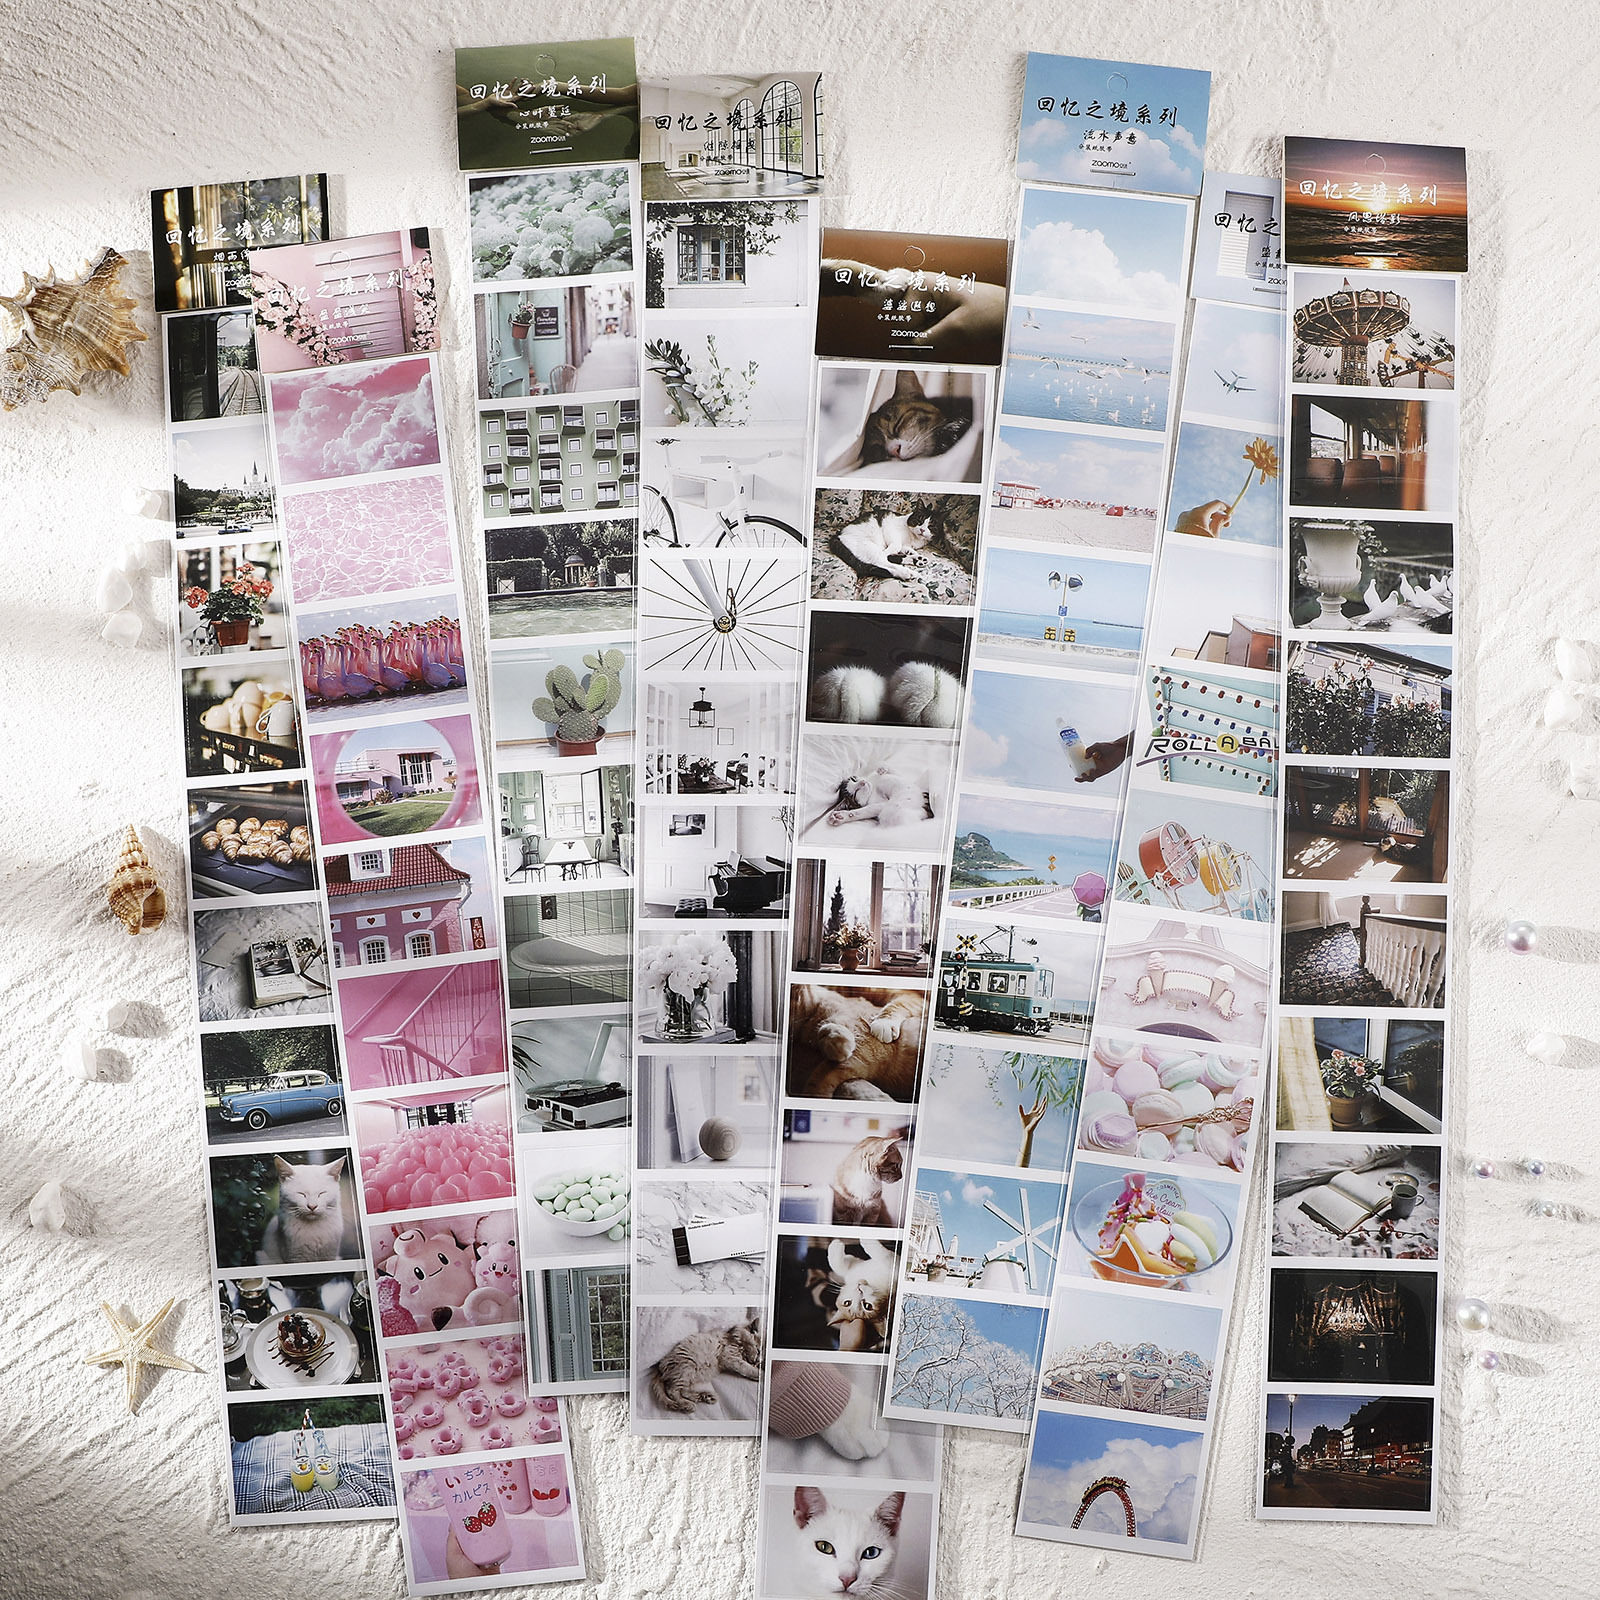 The Memory Of Journey Non-Repeated Long Washi Tape Sticker Writable Bullet Journal Diy Scrapbooking Masking Tape Stationery